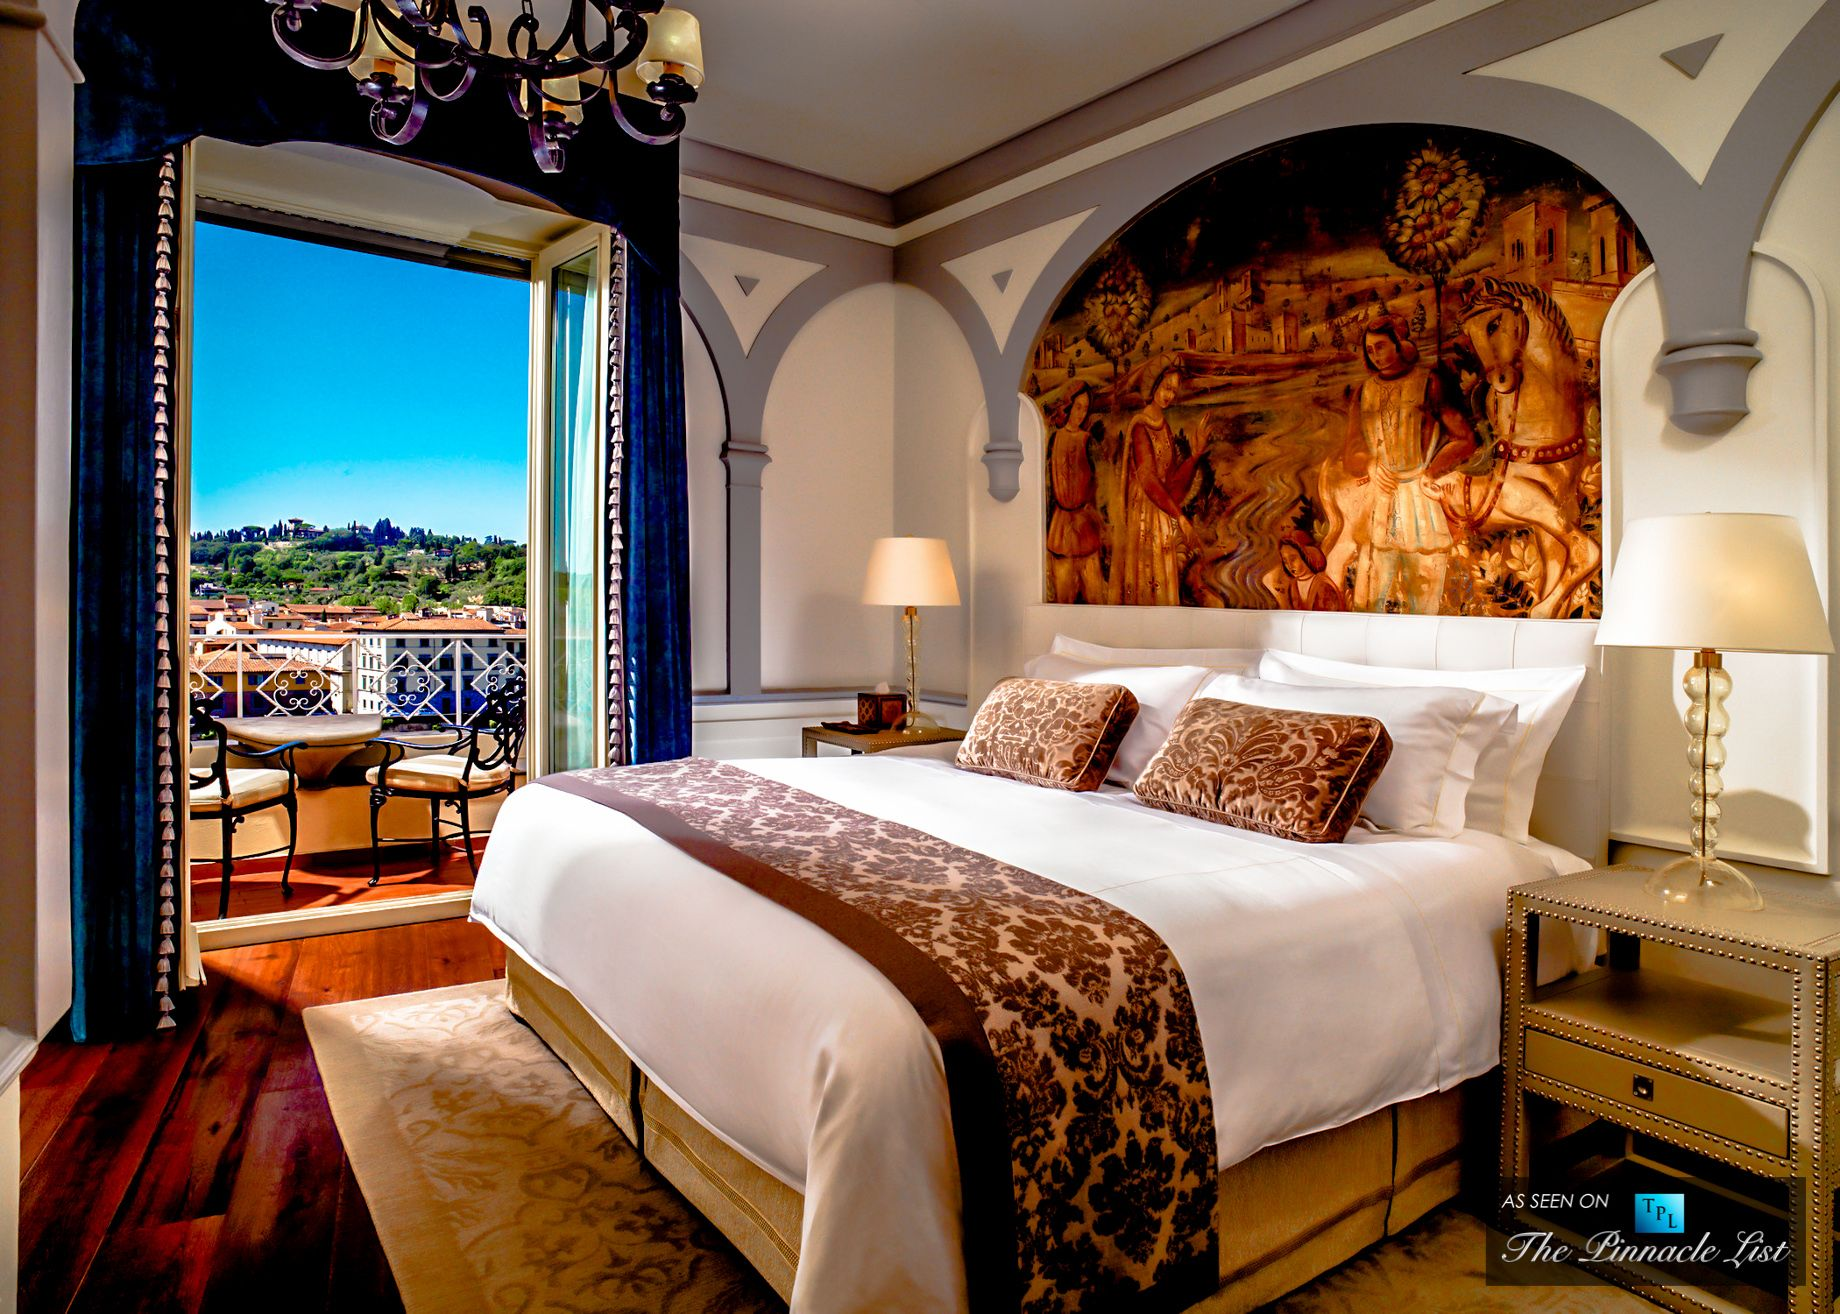 Take A Look At The Most Astonishing And Comfortable Bedroom Designs From Luxury Hotels In Italy Be Prepared To Amazed By These Seeing